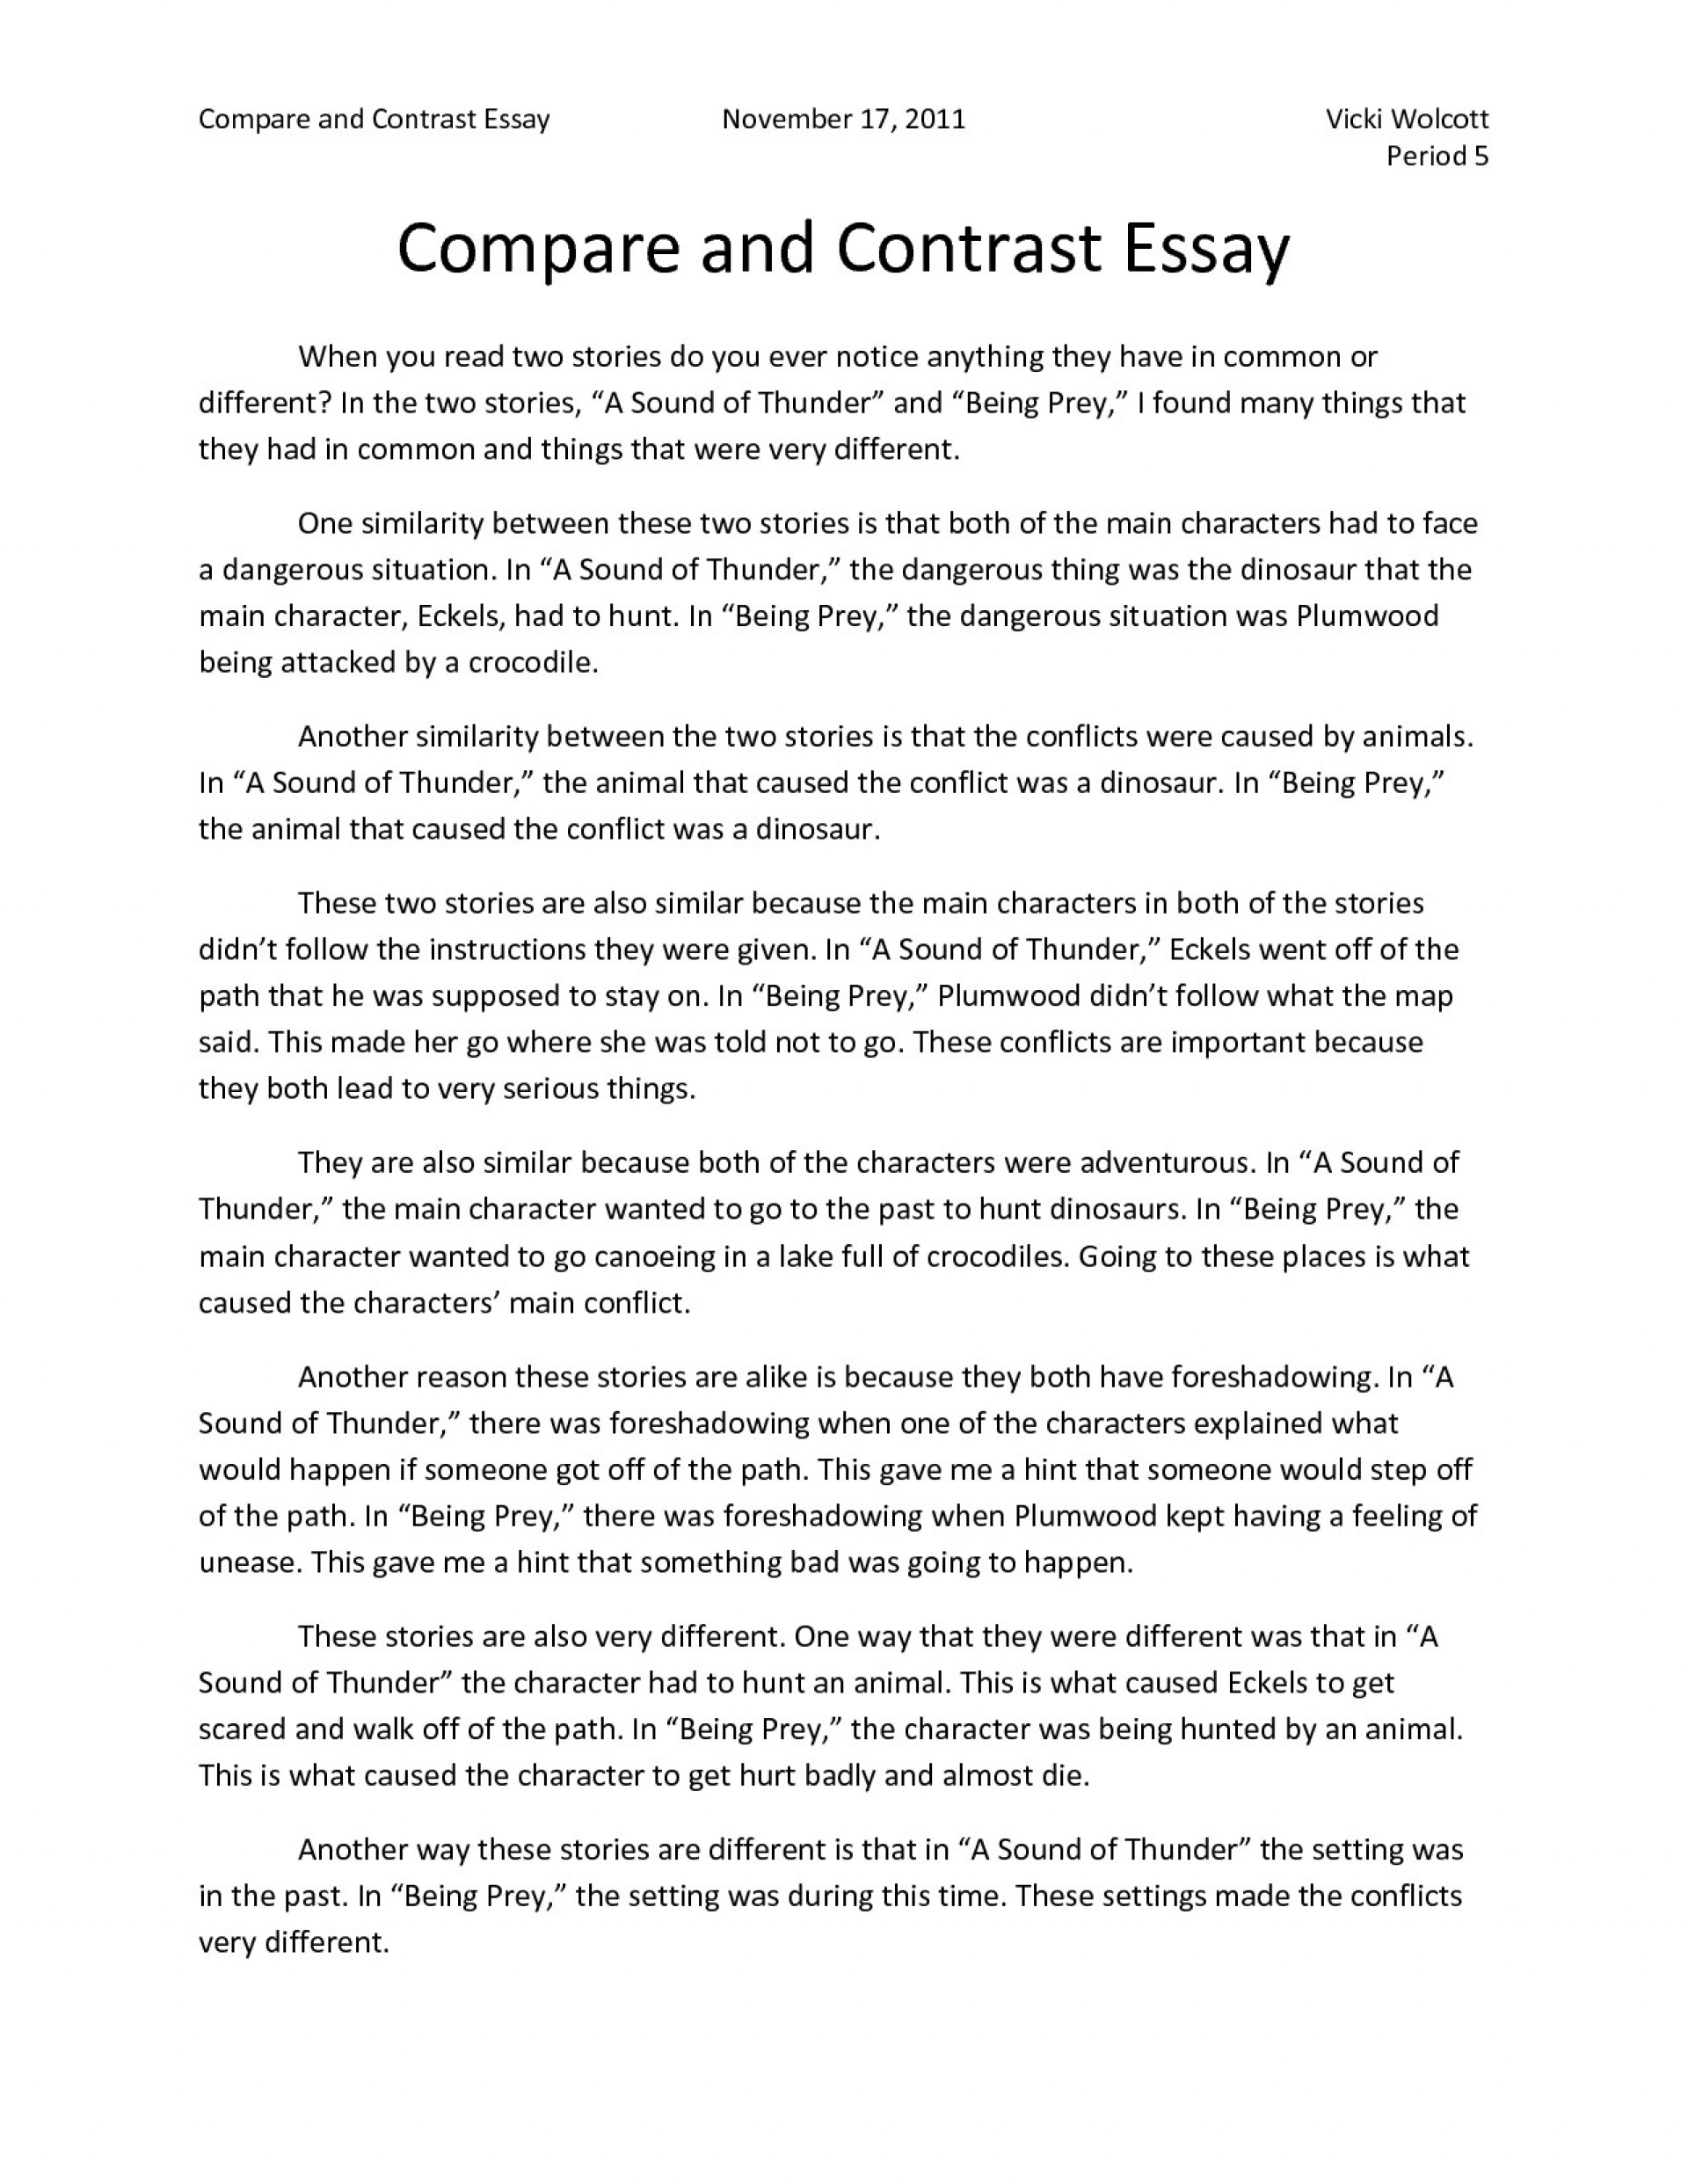 005 Essay Example An Of Compare And Contrast Comparison Ideas Awful Examples Point-by-point 1920